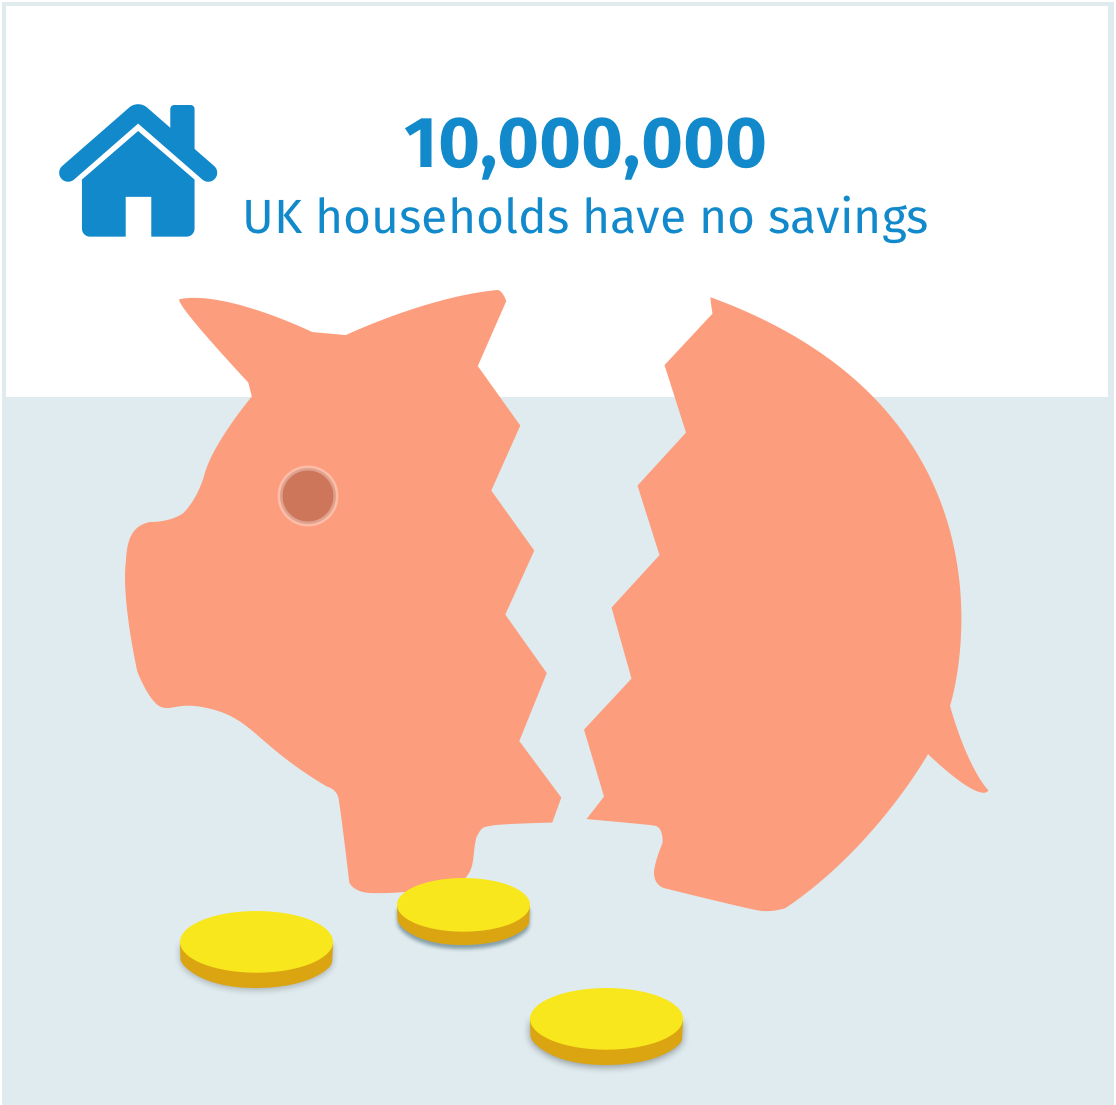 10 million households in the UK have no savings